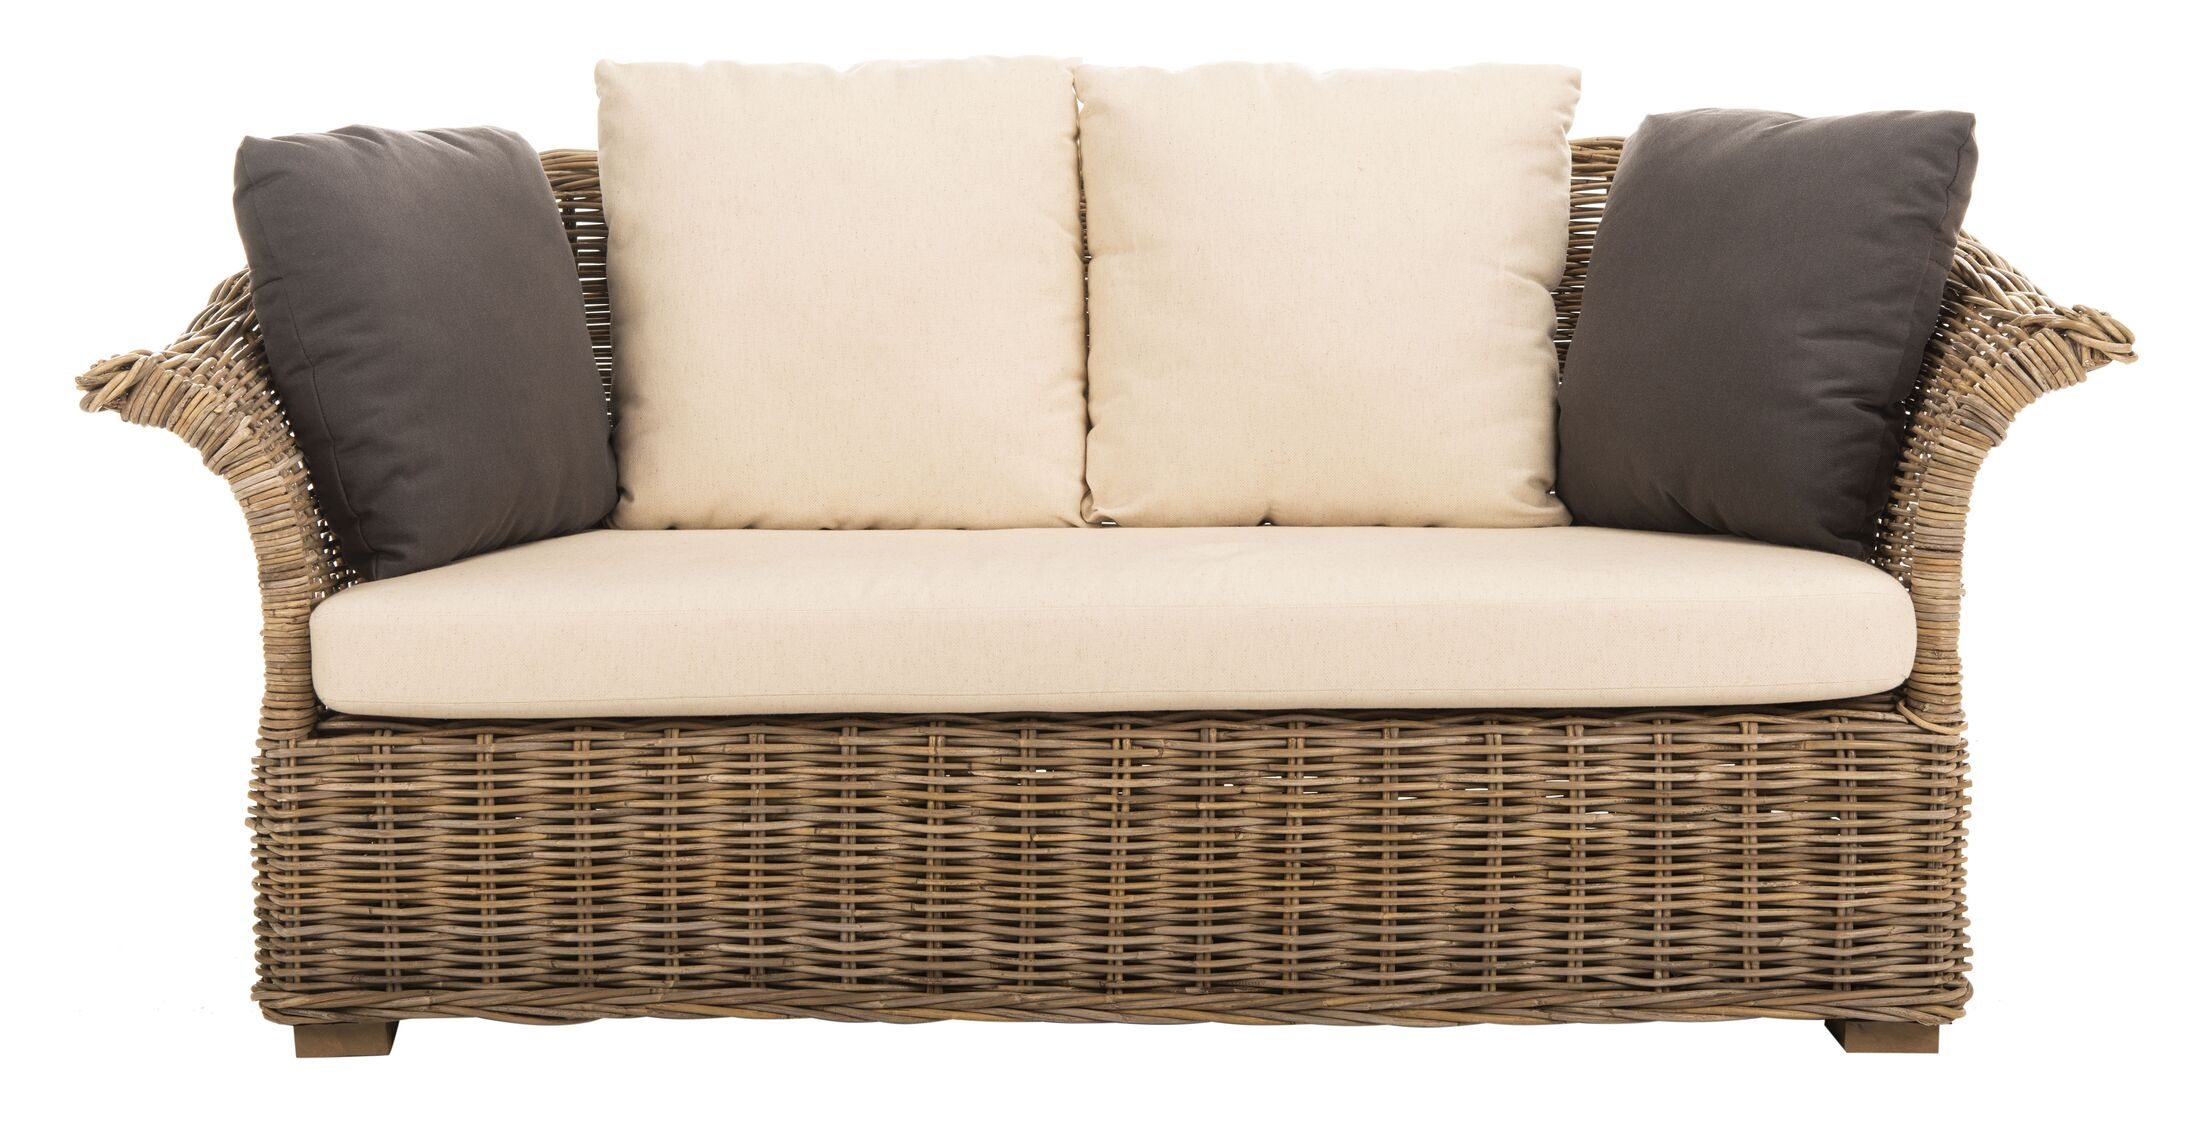 Io Loveseat with Cushions Frame Color: Gray, Cushion Color: Brown/Beige